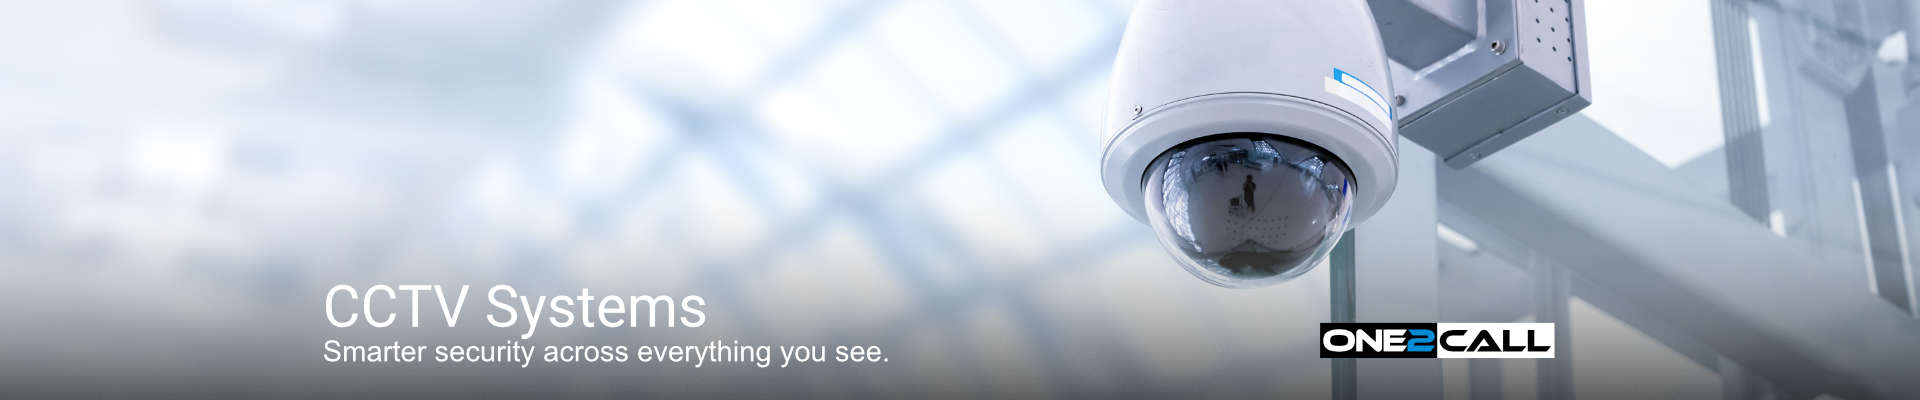 CCTV Systems - Smarter security across everything you see.